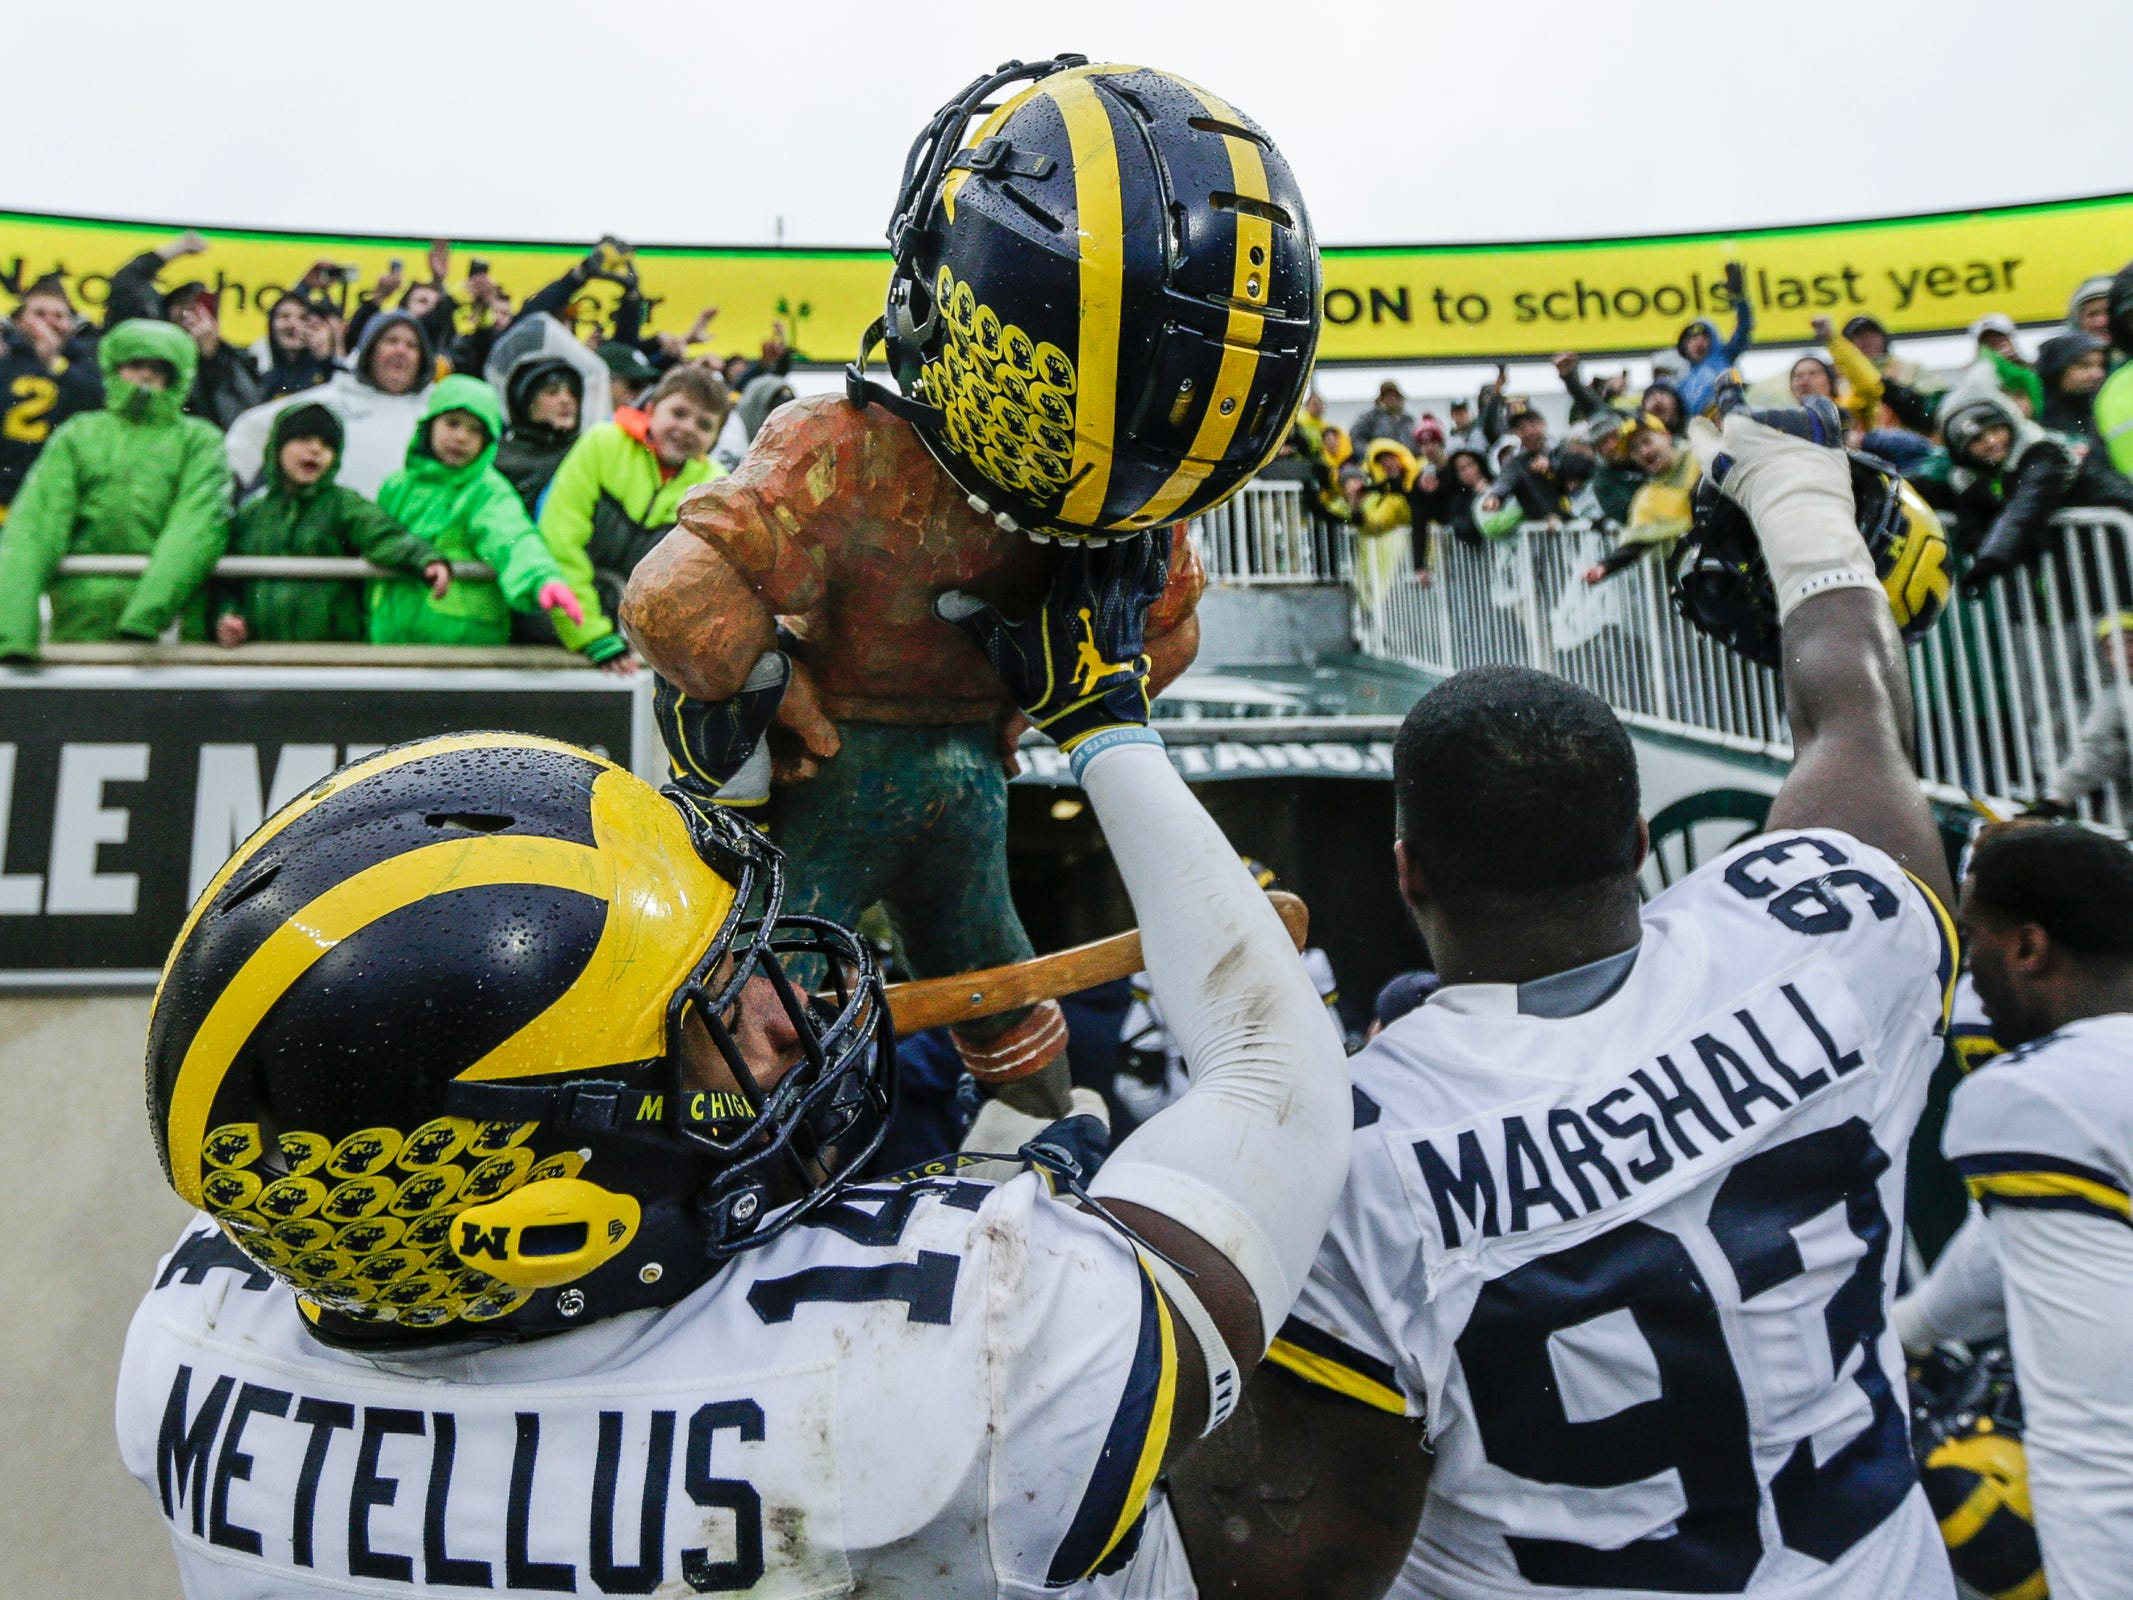 Michigan safety Josh Metellus holds the Paul Bunyan Trophy as he walks into the tunnel at Spartan Stadium in East Lansing, Saturday, Oct. 20, 2018.